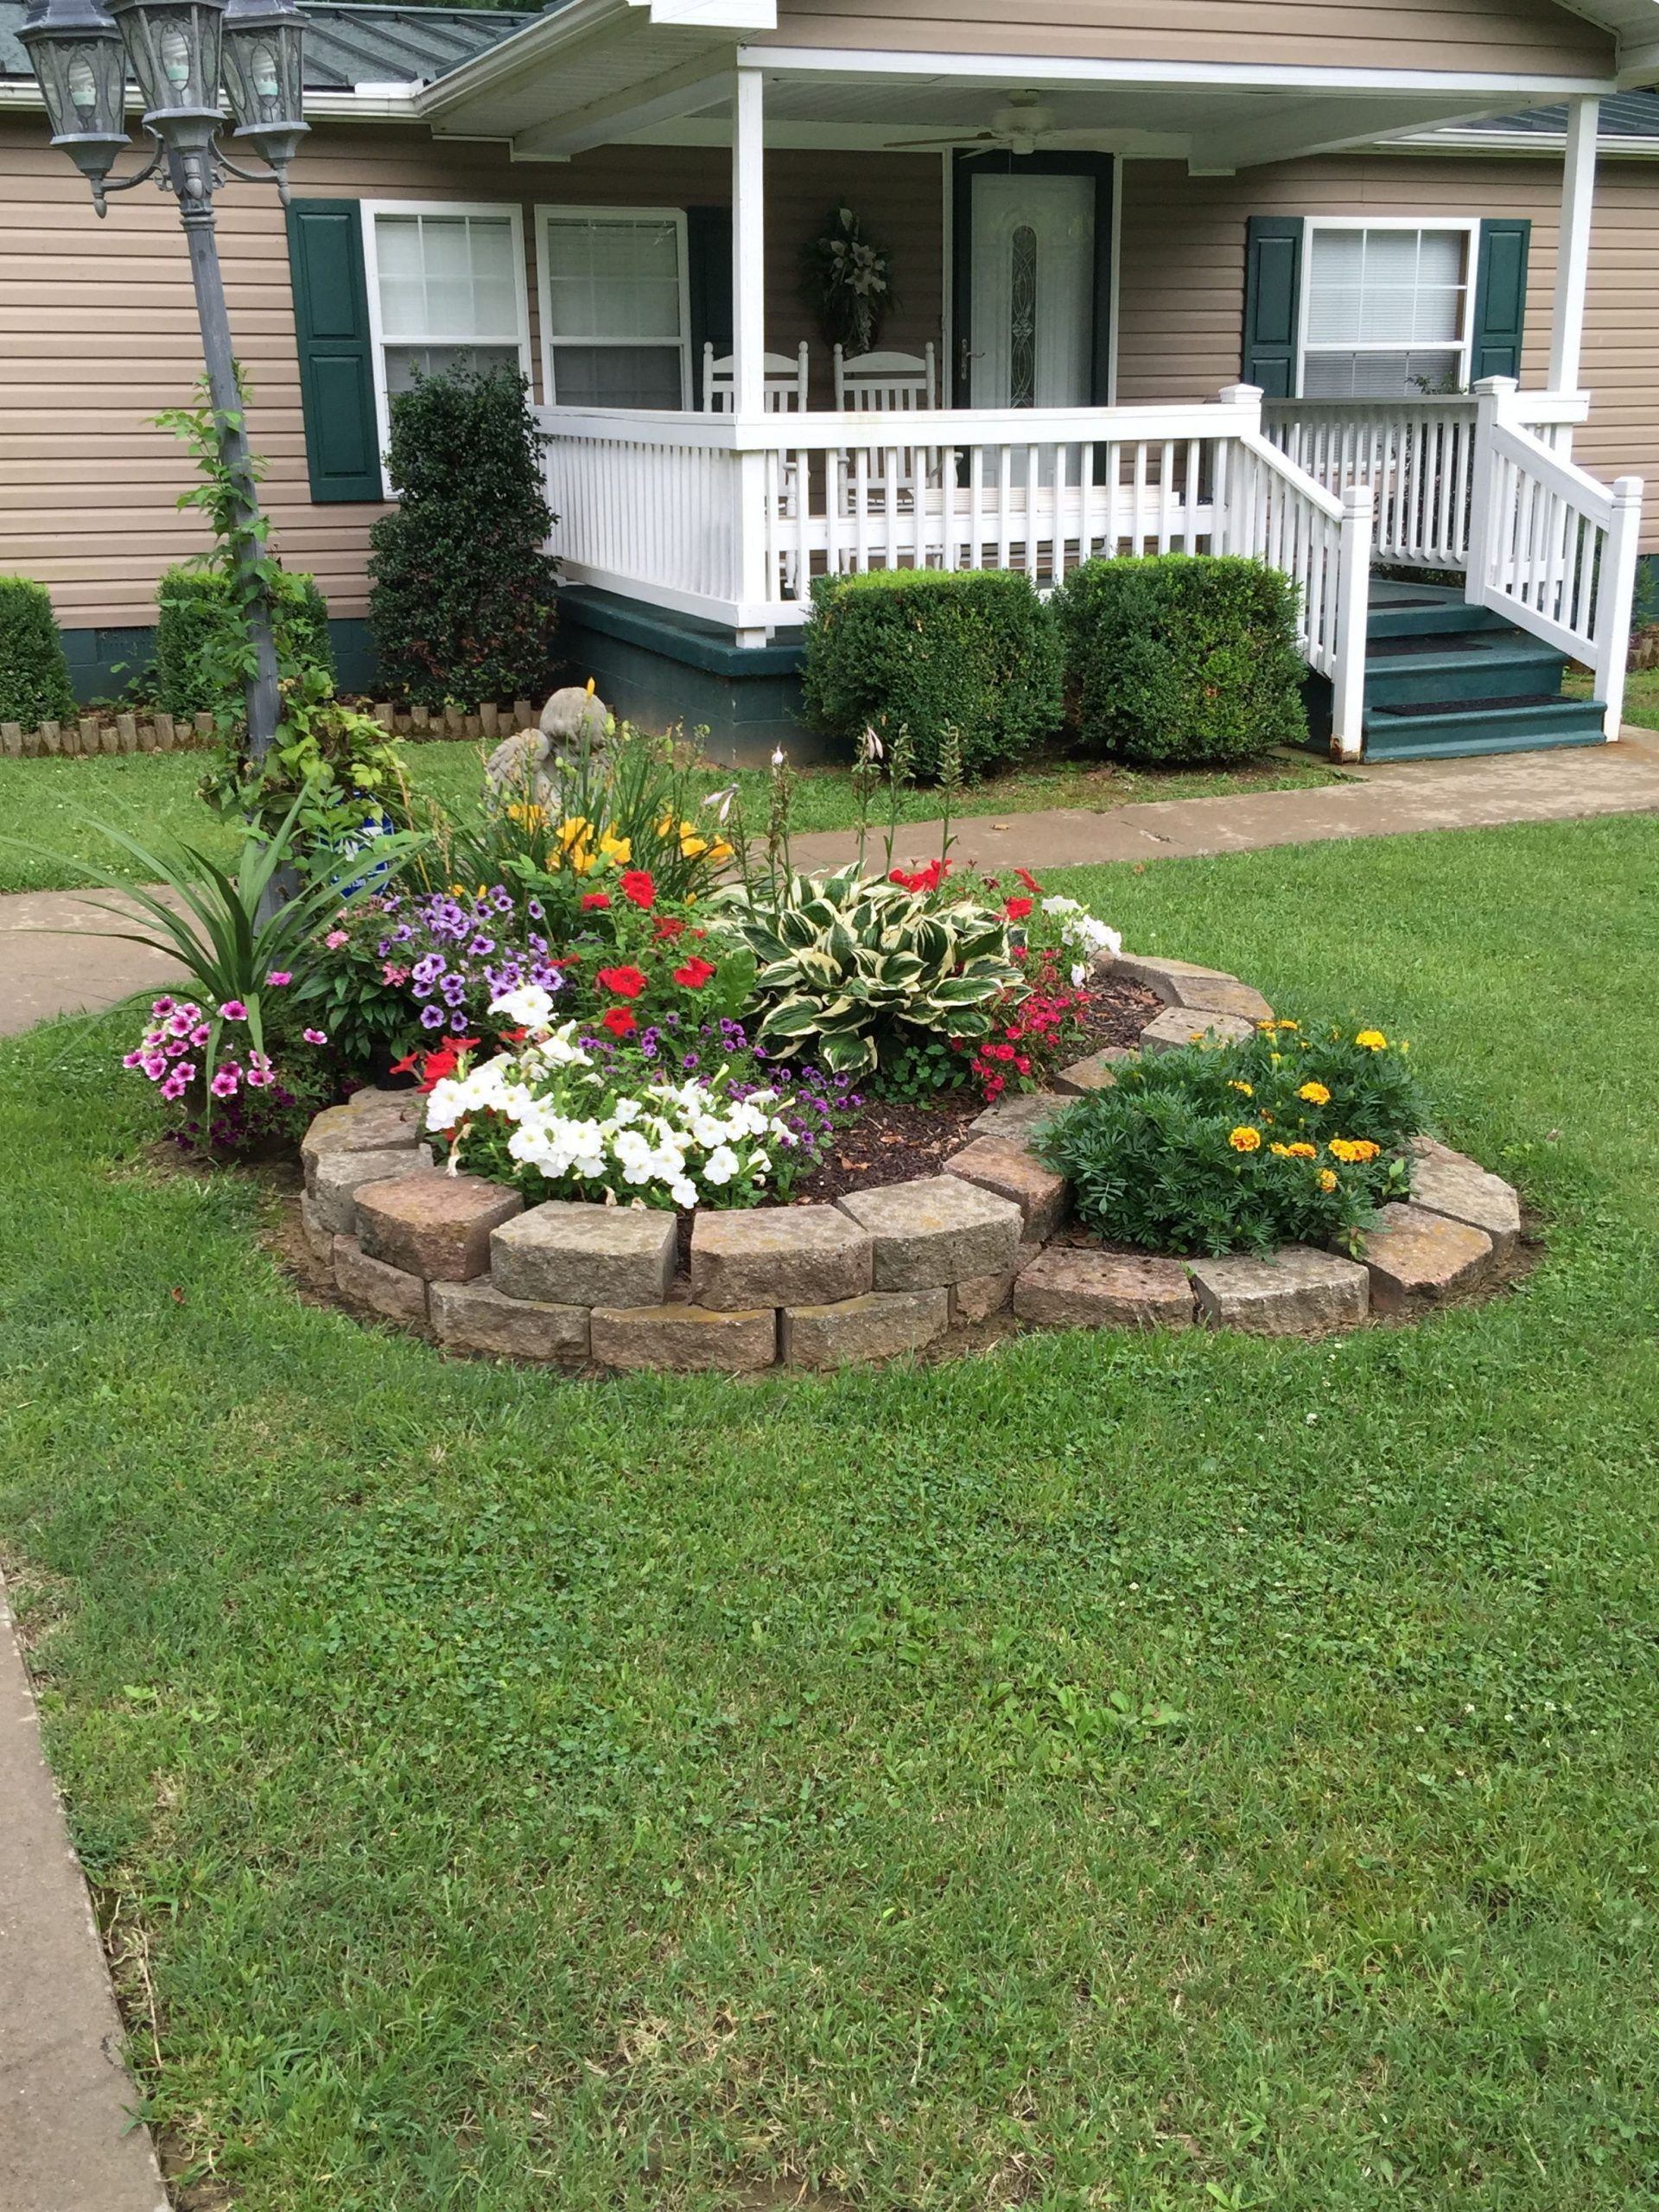 Gorgeous and Pretty Front Yard Garden and Landscaping Ideas #frontyardlanscape #...#front #frontyardlanscape #garden #gorgeous #ideas #landscaping #pretty #yard